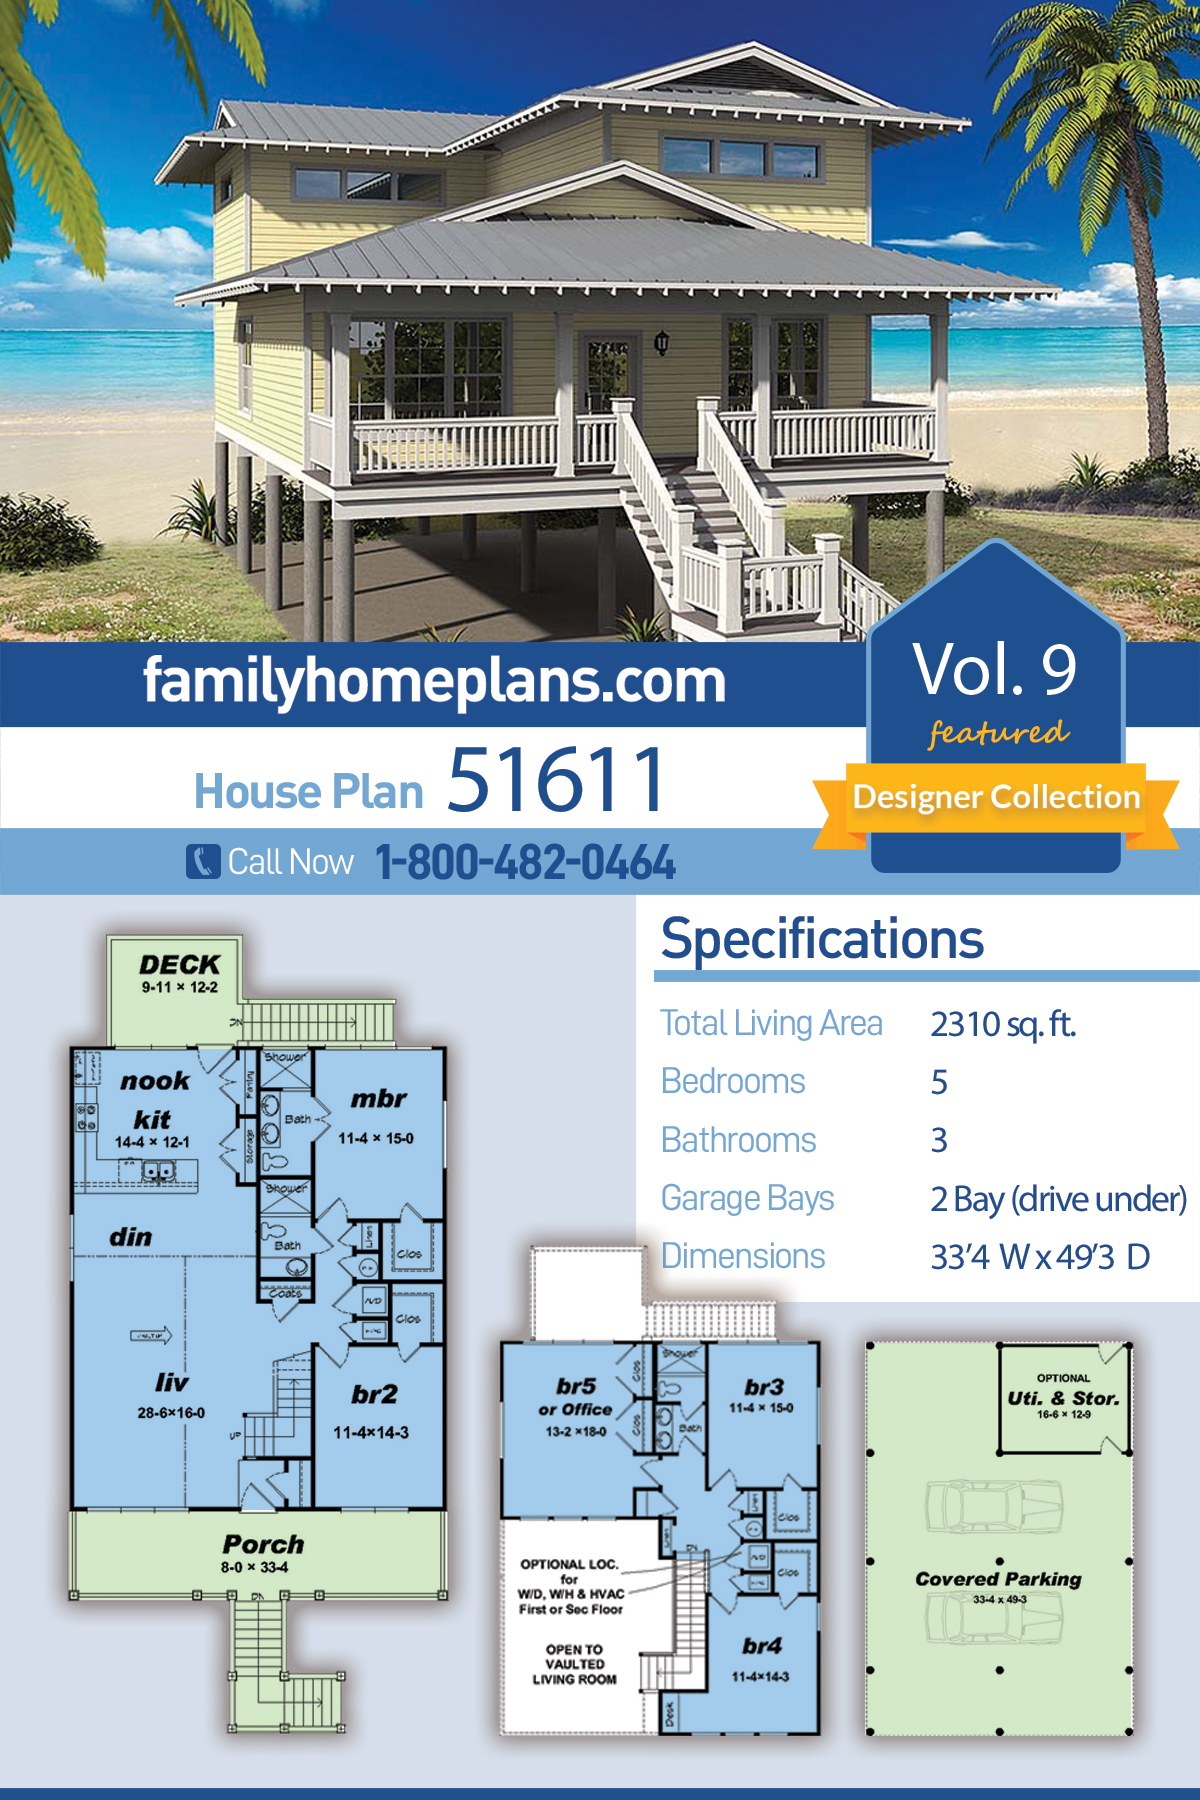 Coastal, Contemporary, Cottage House Plan 51611 with 5 Beds, 3 Baths, 2 Car Garage